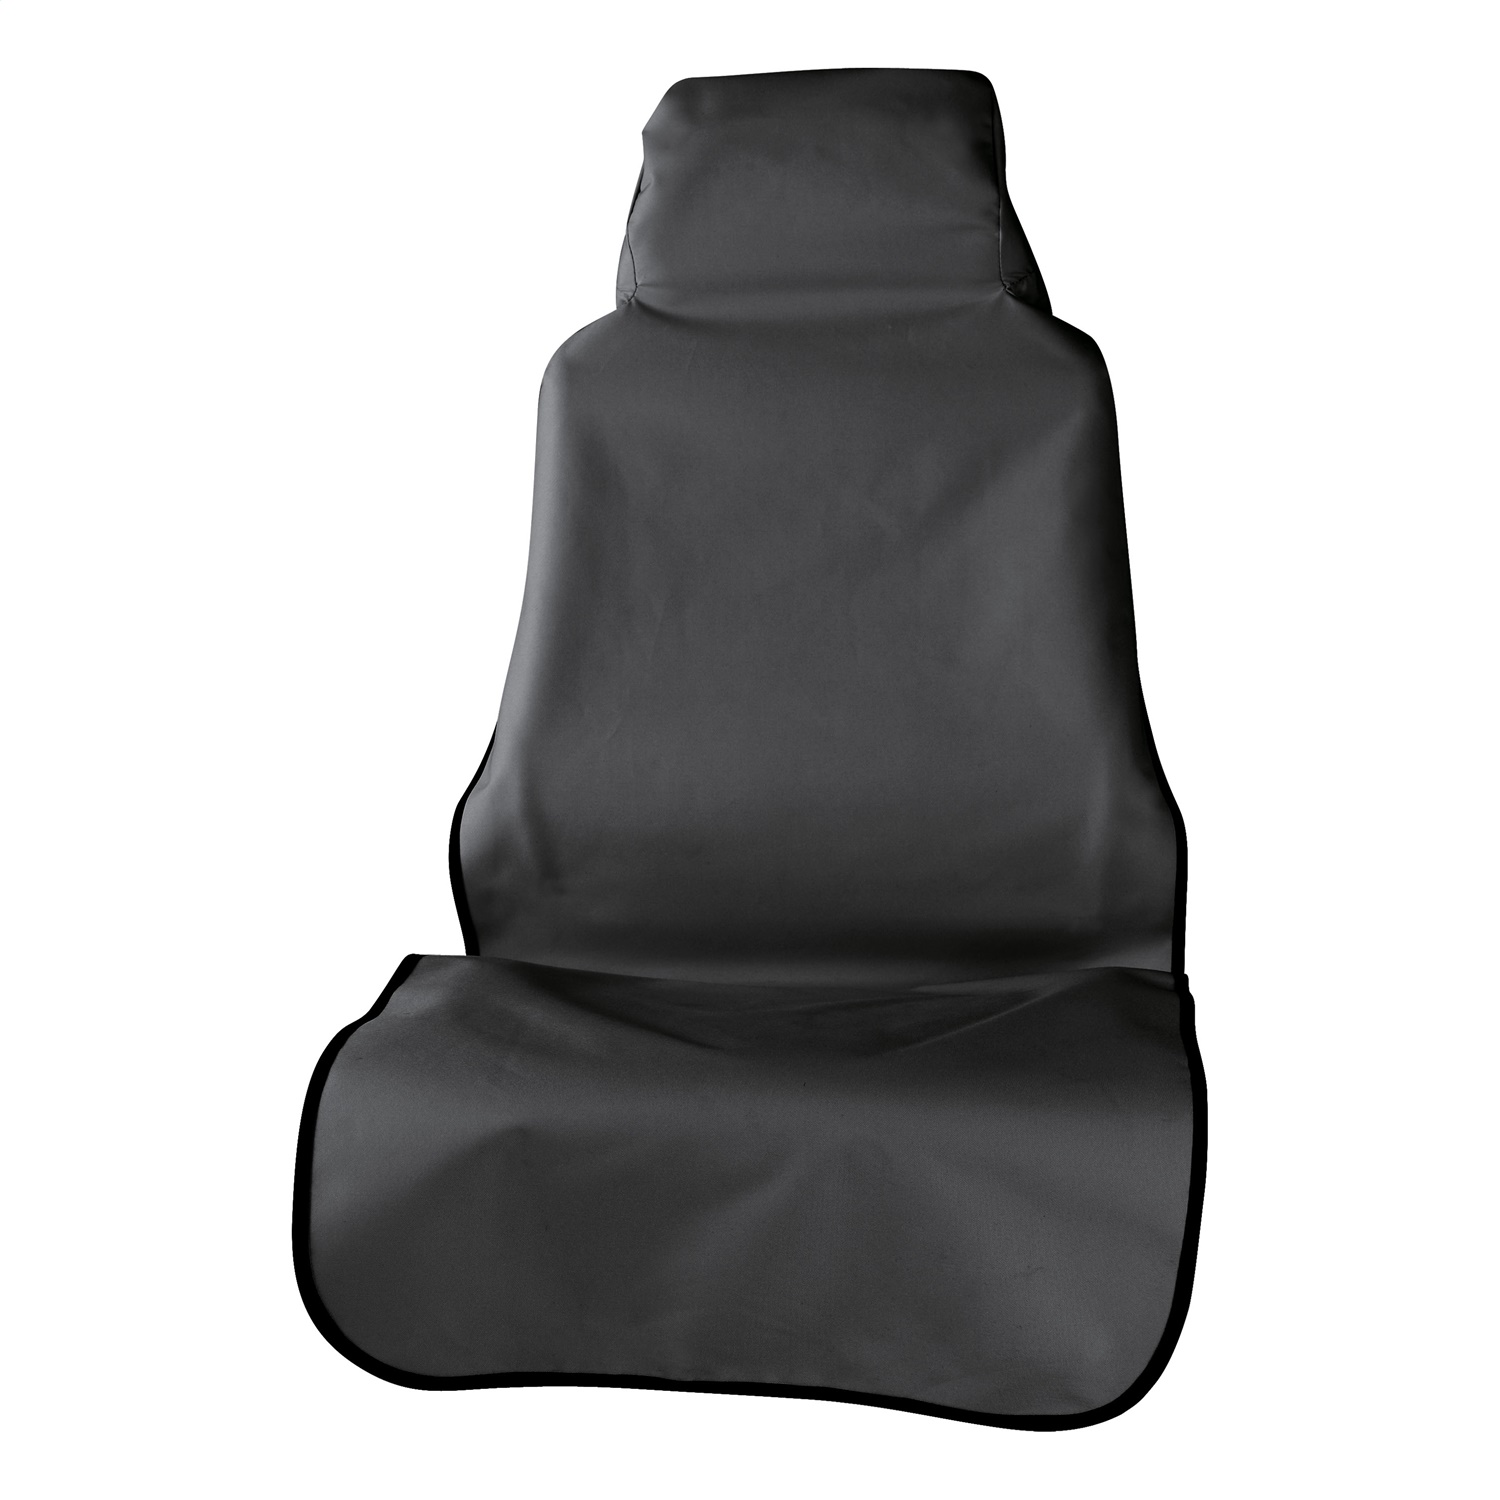 Seat Defender Seat Cover, Black, Front, Bucket Seat